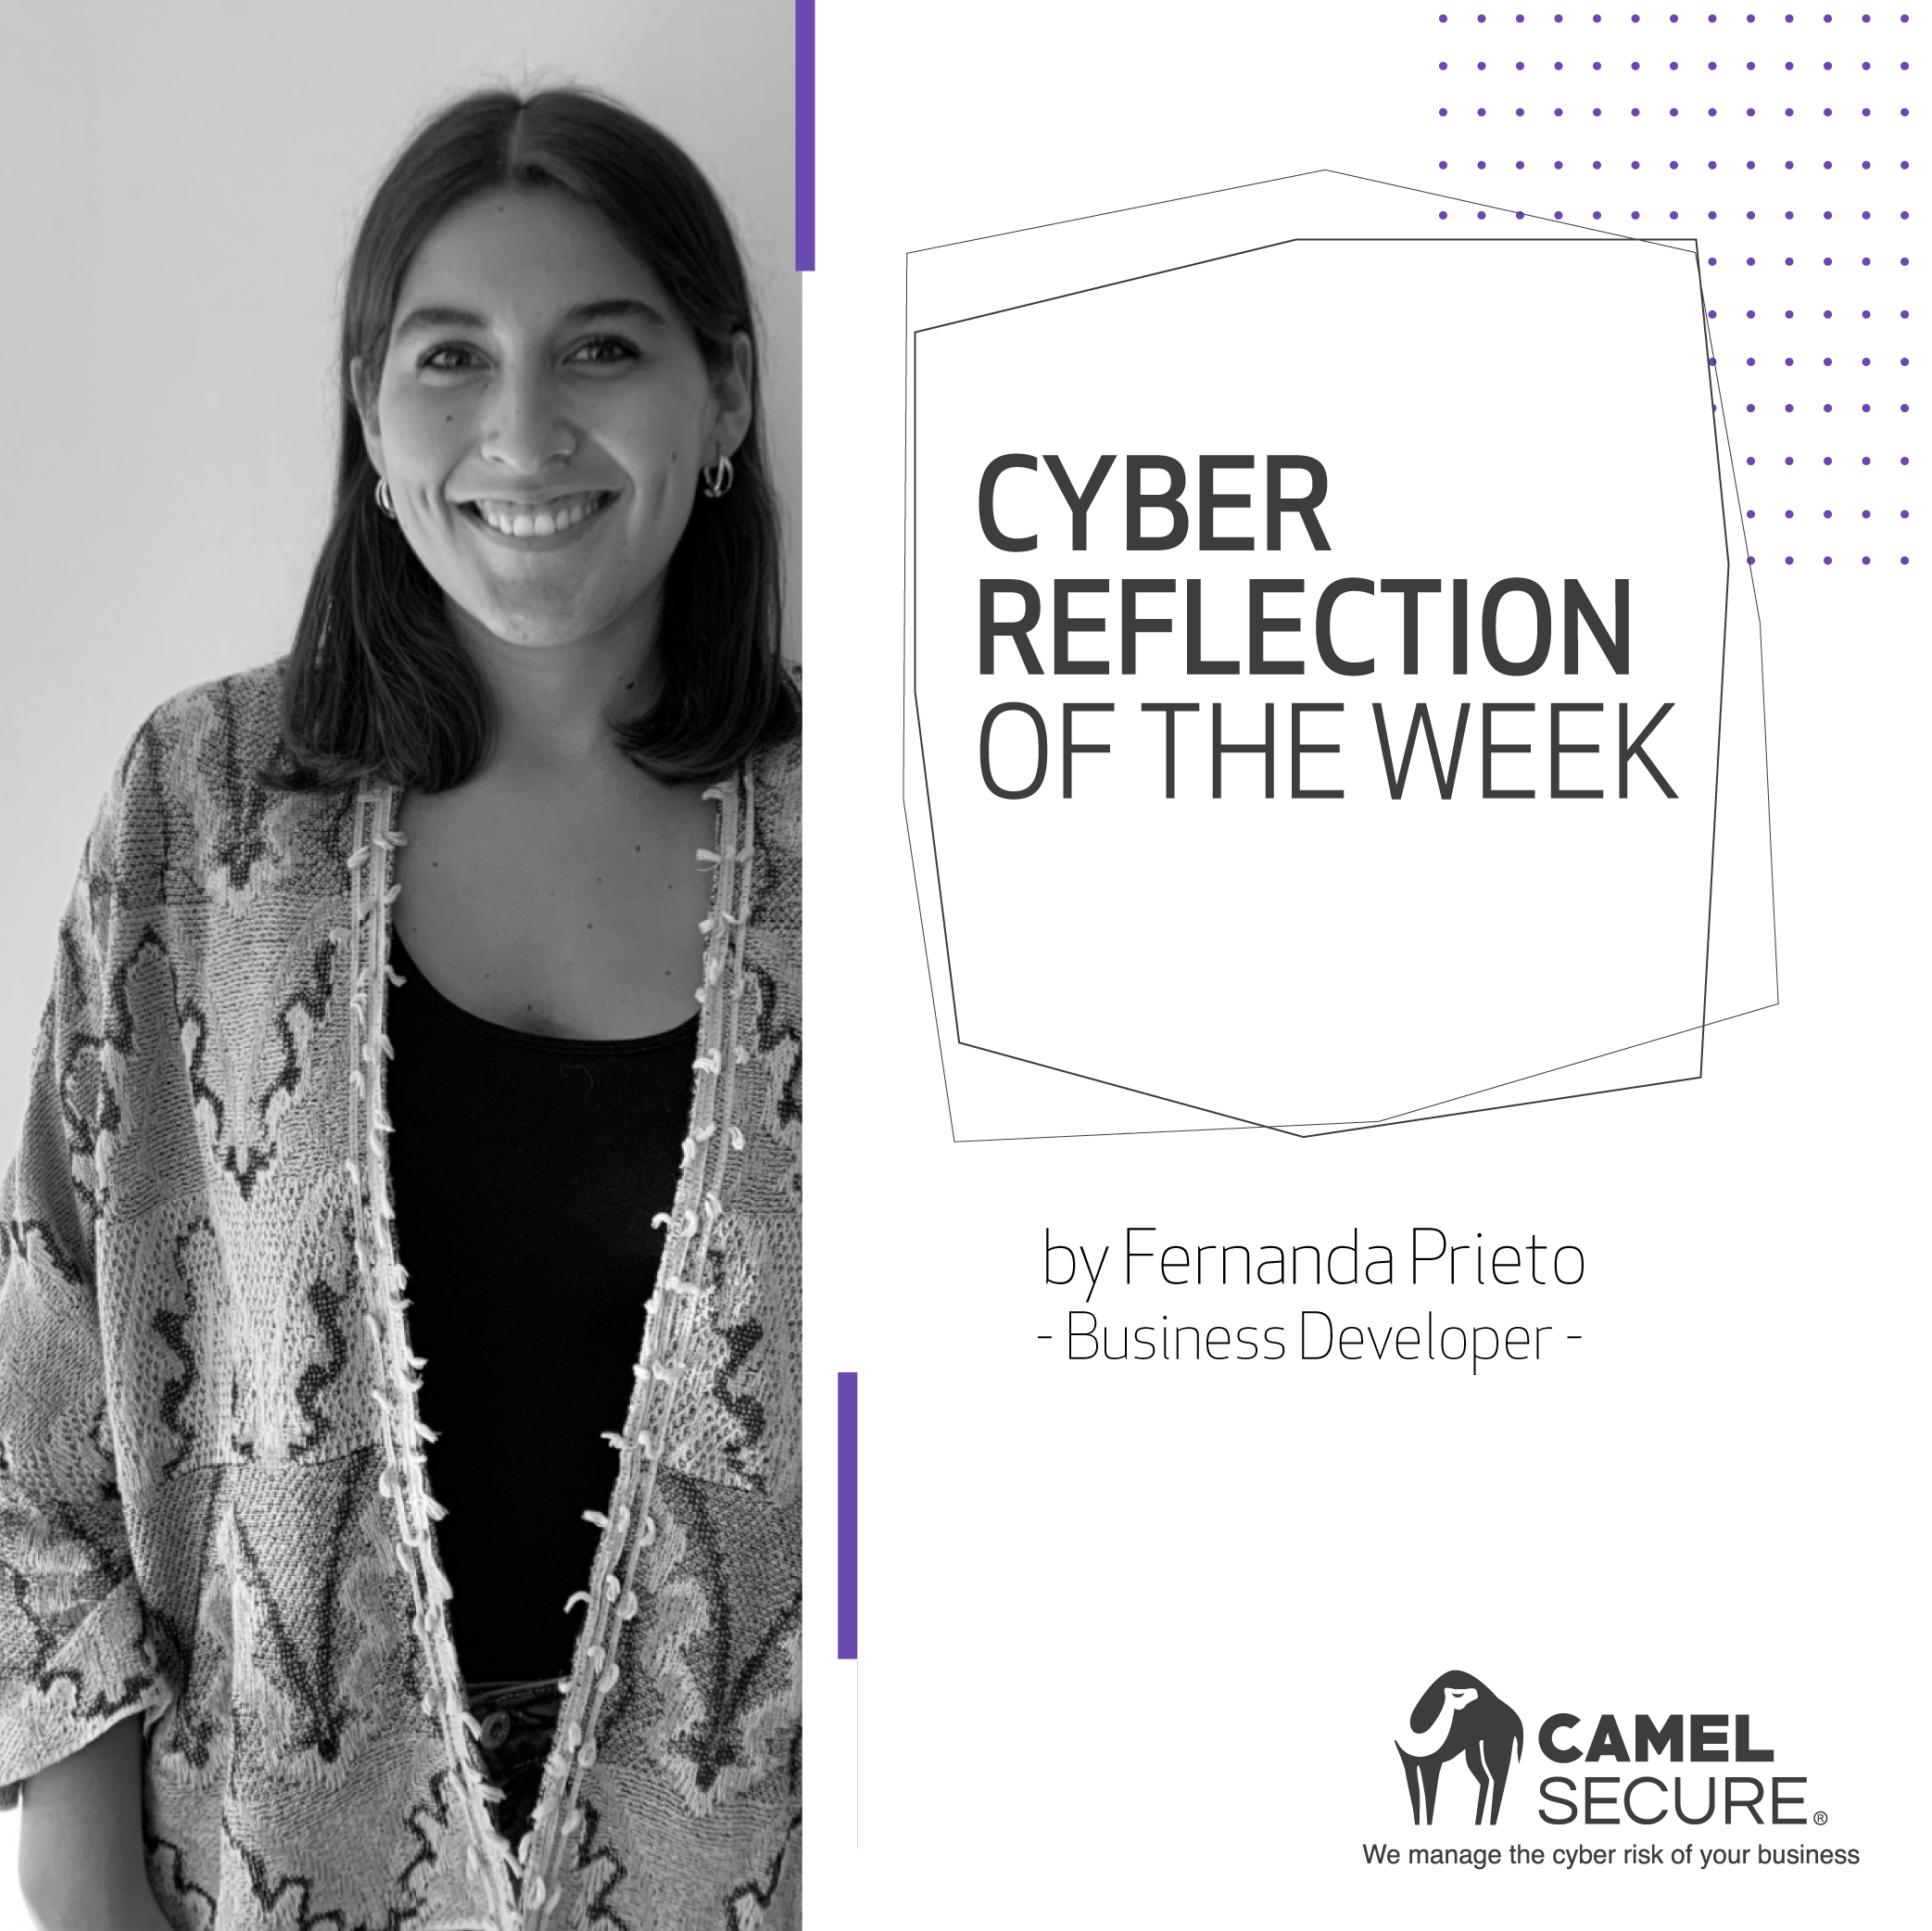 Cyber Reflection of the Week